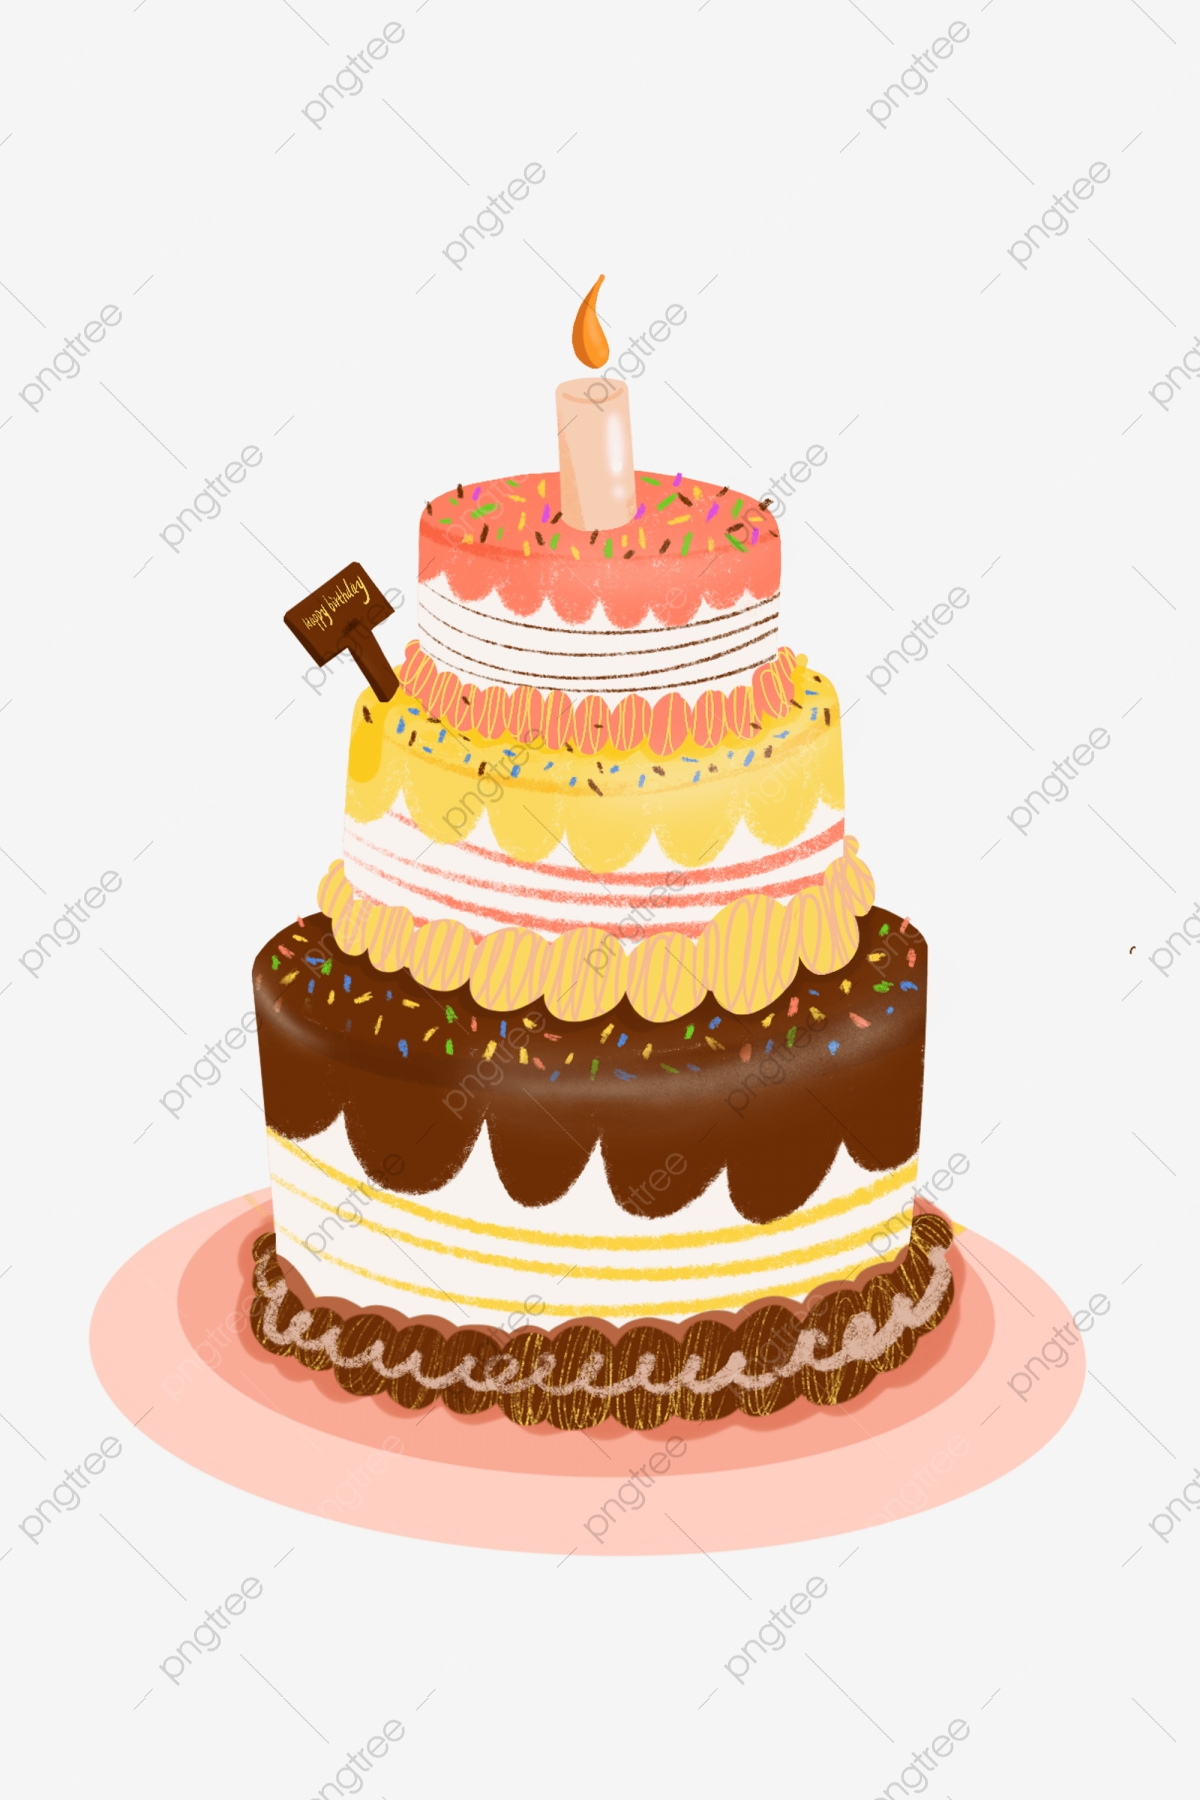 Remarkable Three Tiered Birthday Cake Three Tiered Cake Birthday Cake Funny Birthday Cards Online Inifofree Goldxyz